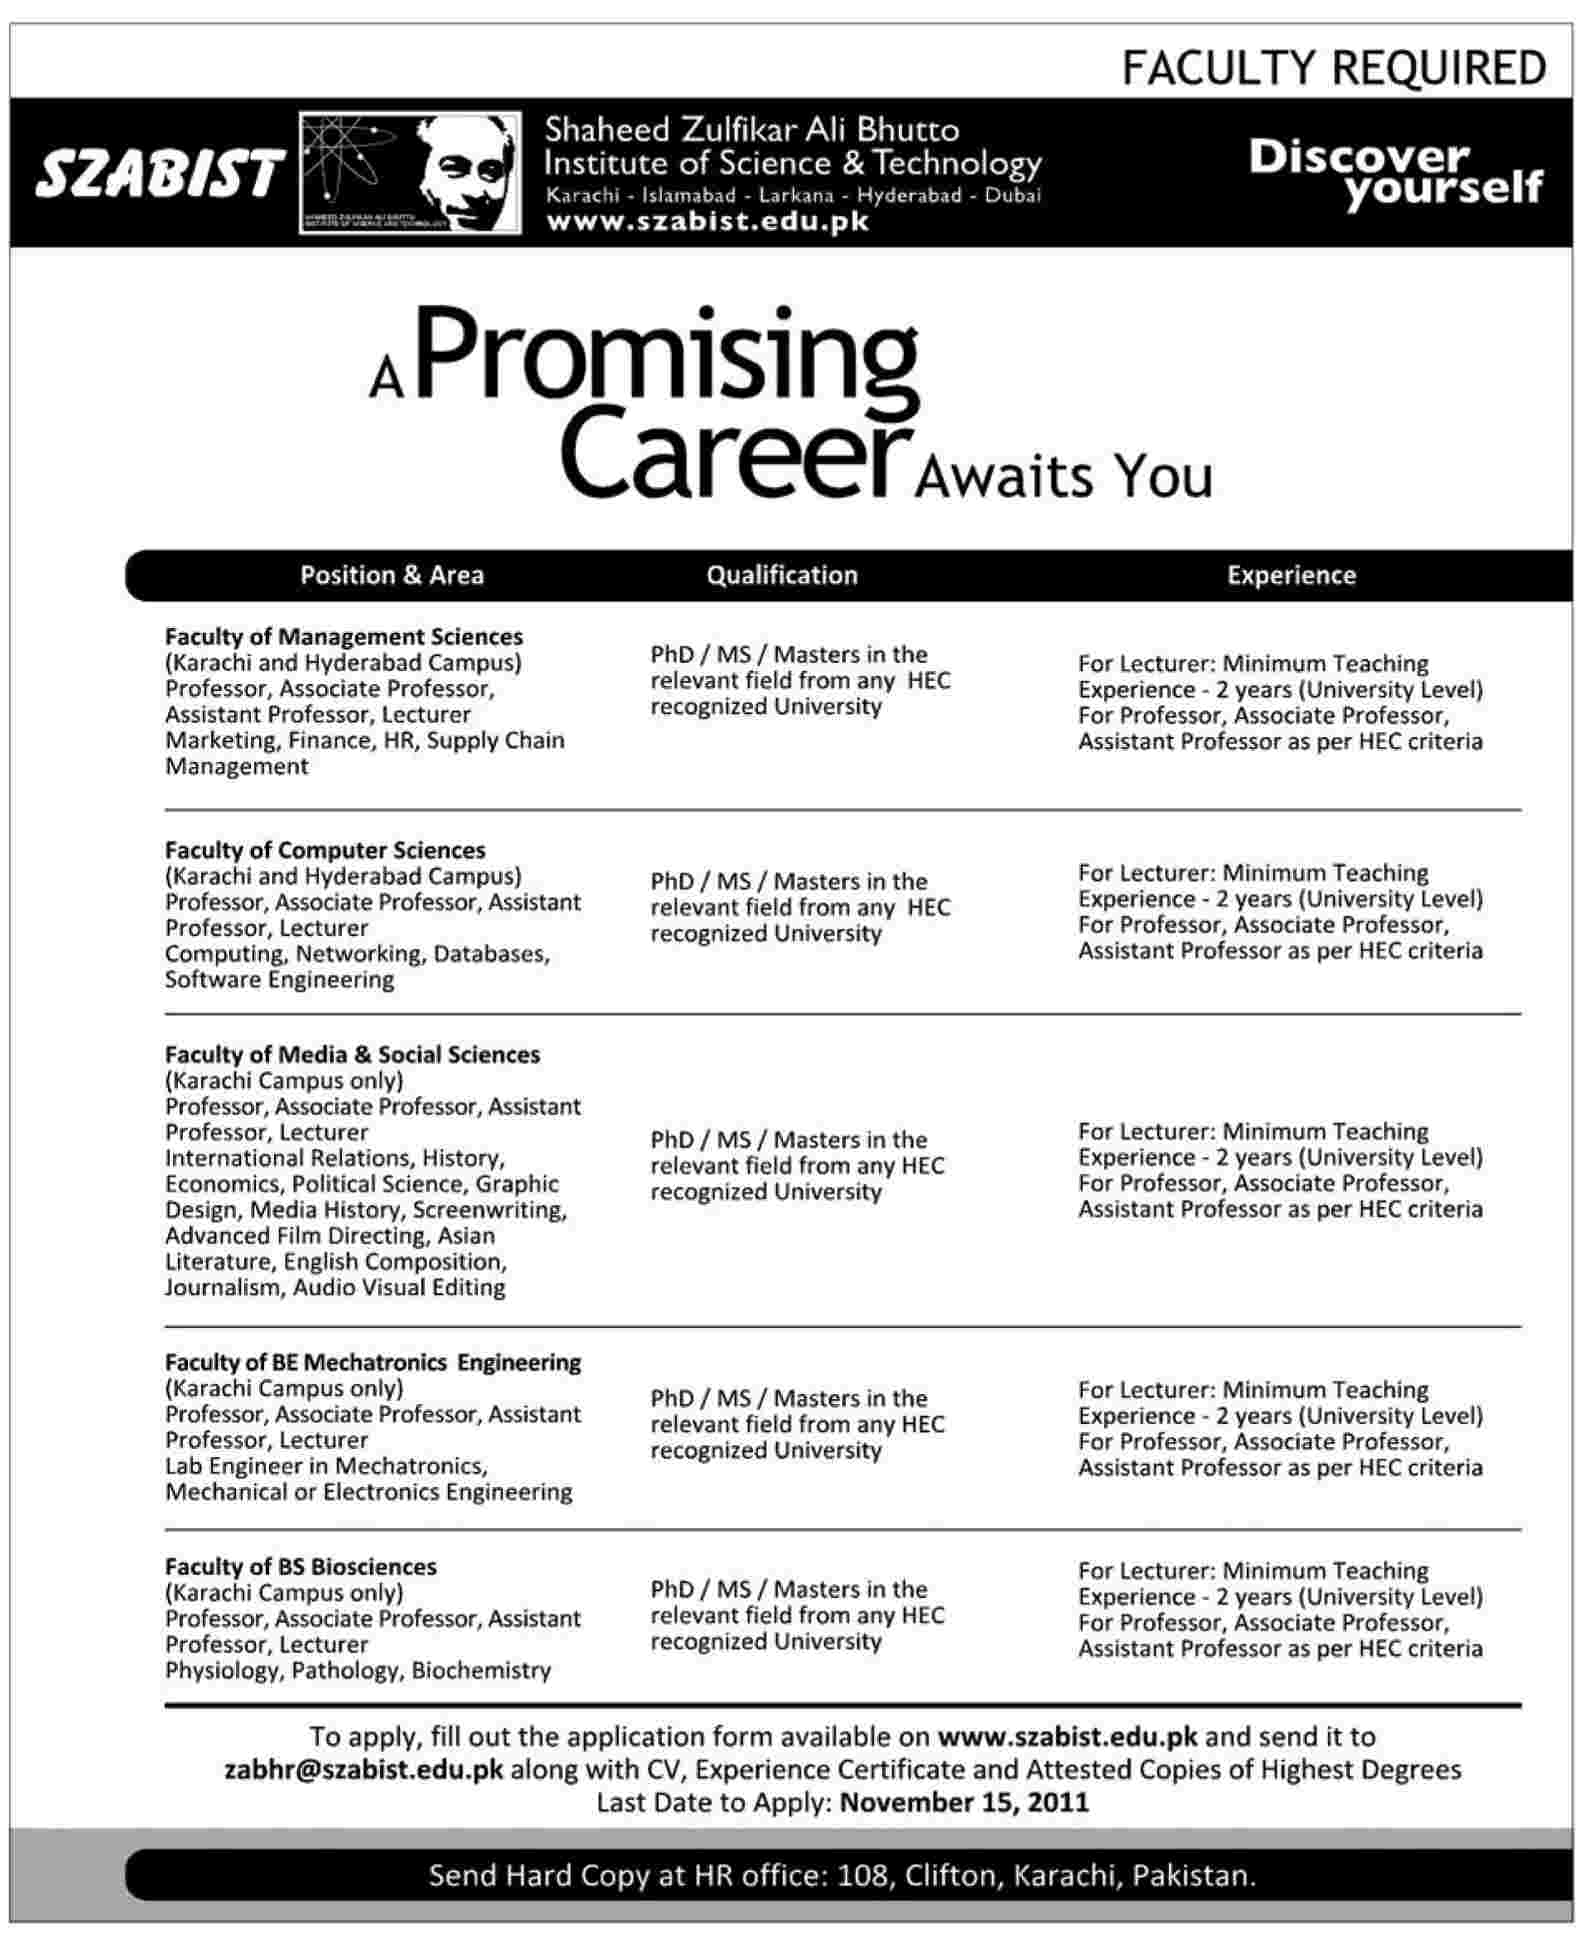 szabist required faculty in different departments in karachi szabist required faculty in different departments